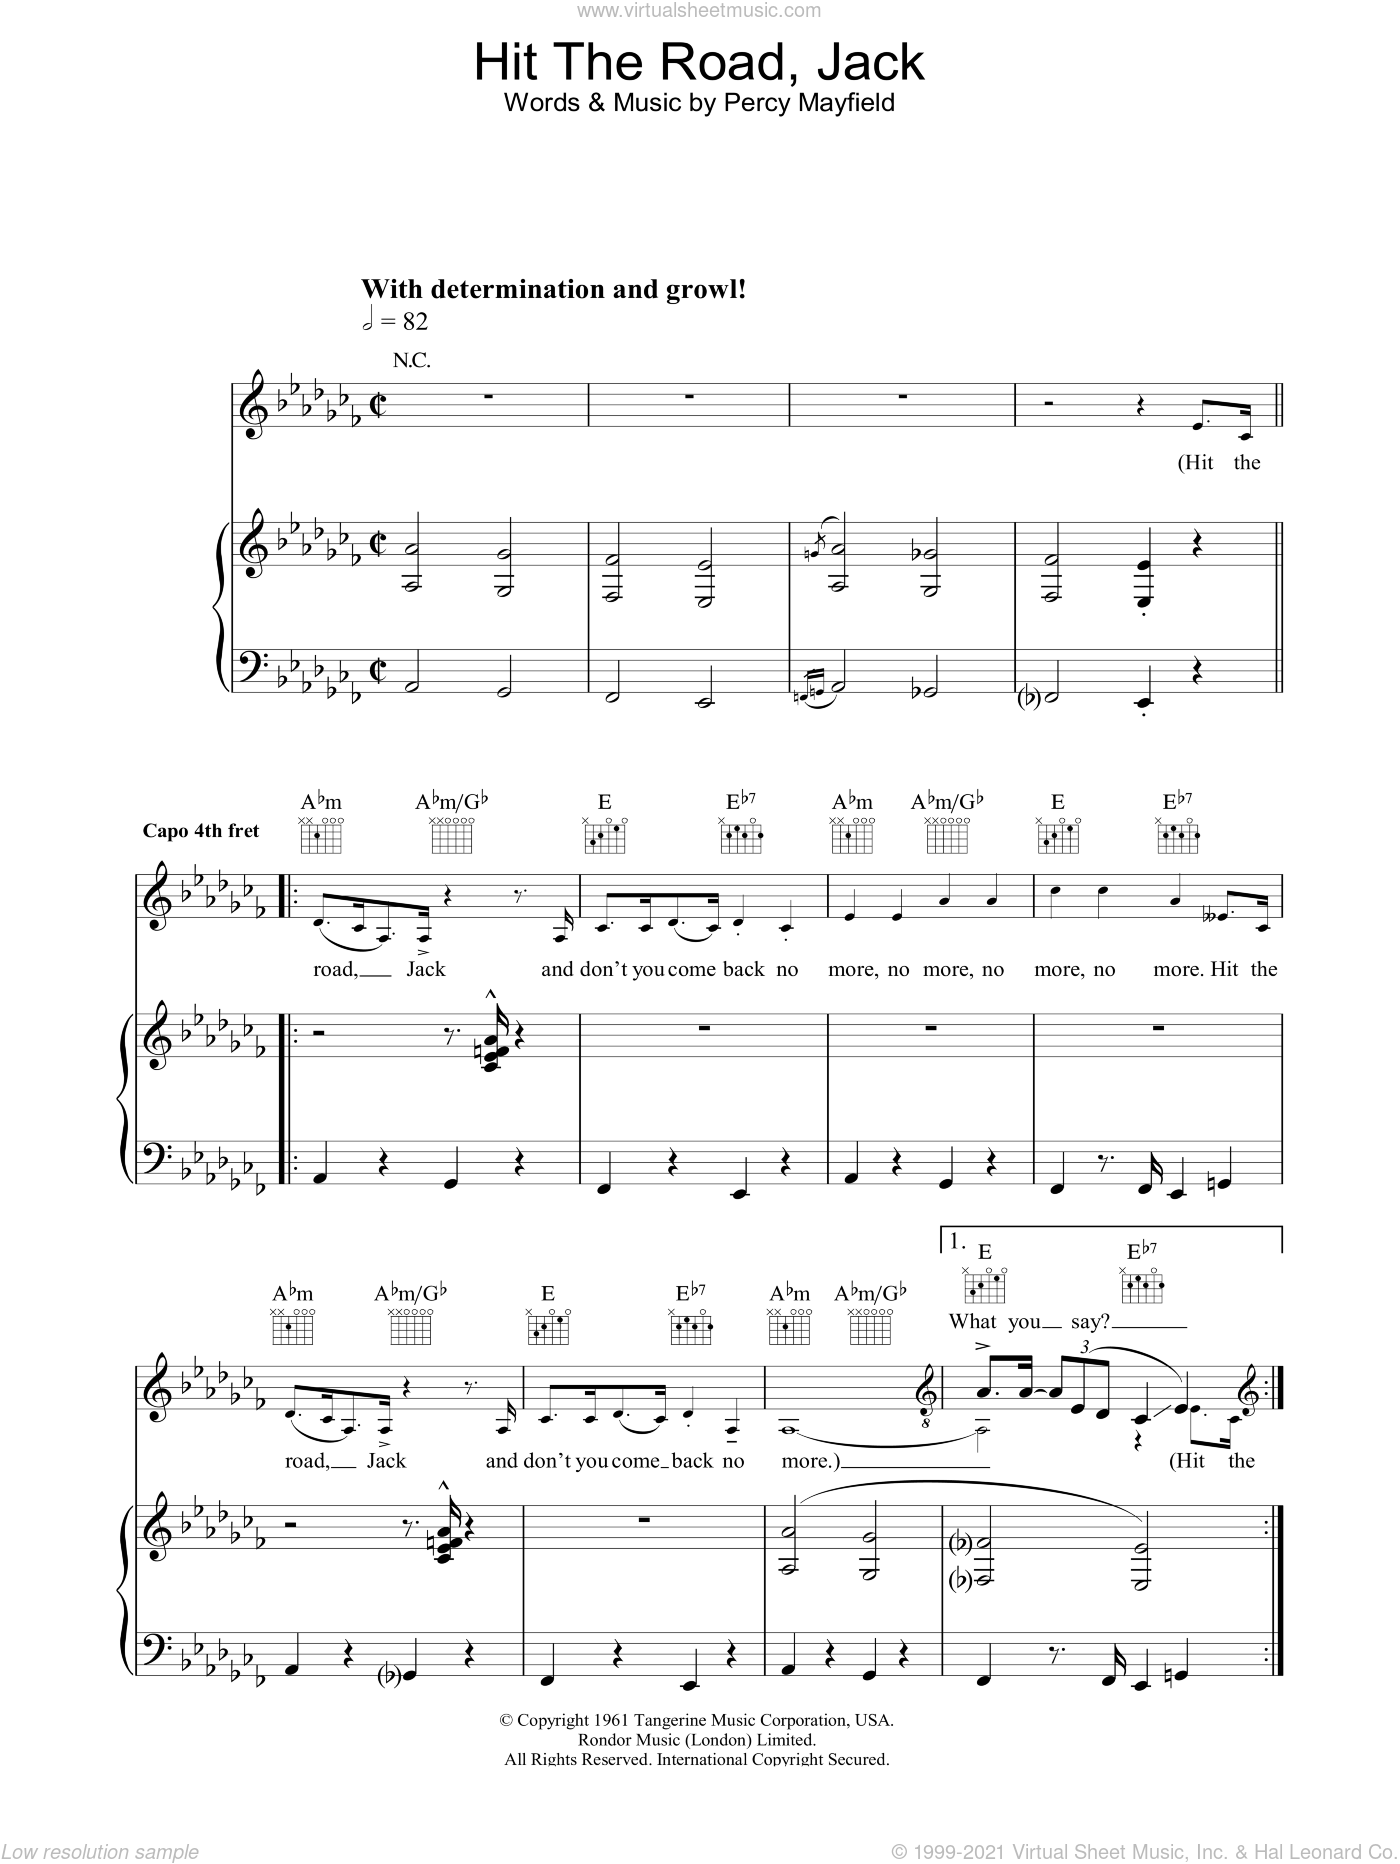 Hit The Road Jack sheet music for voice, piano or guitar by Percy Mayfield and Ray Charles. Score Image Preview.